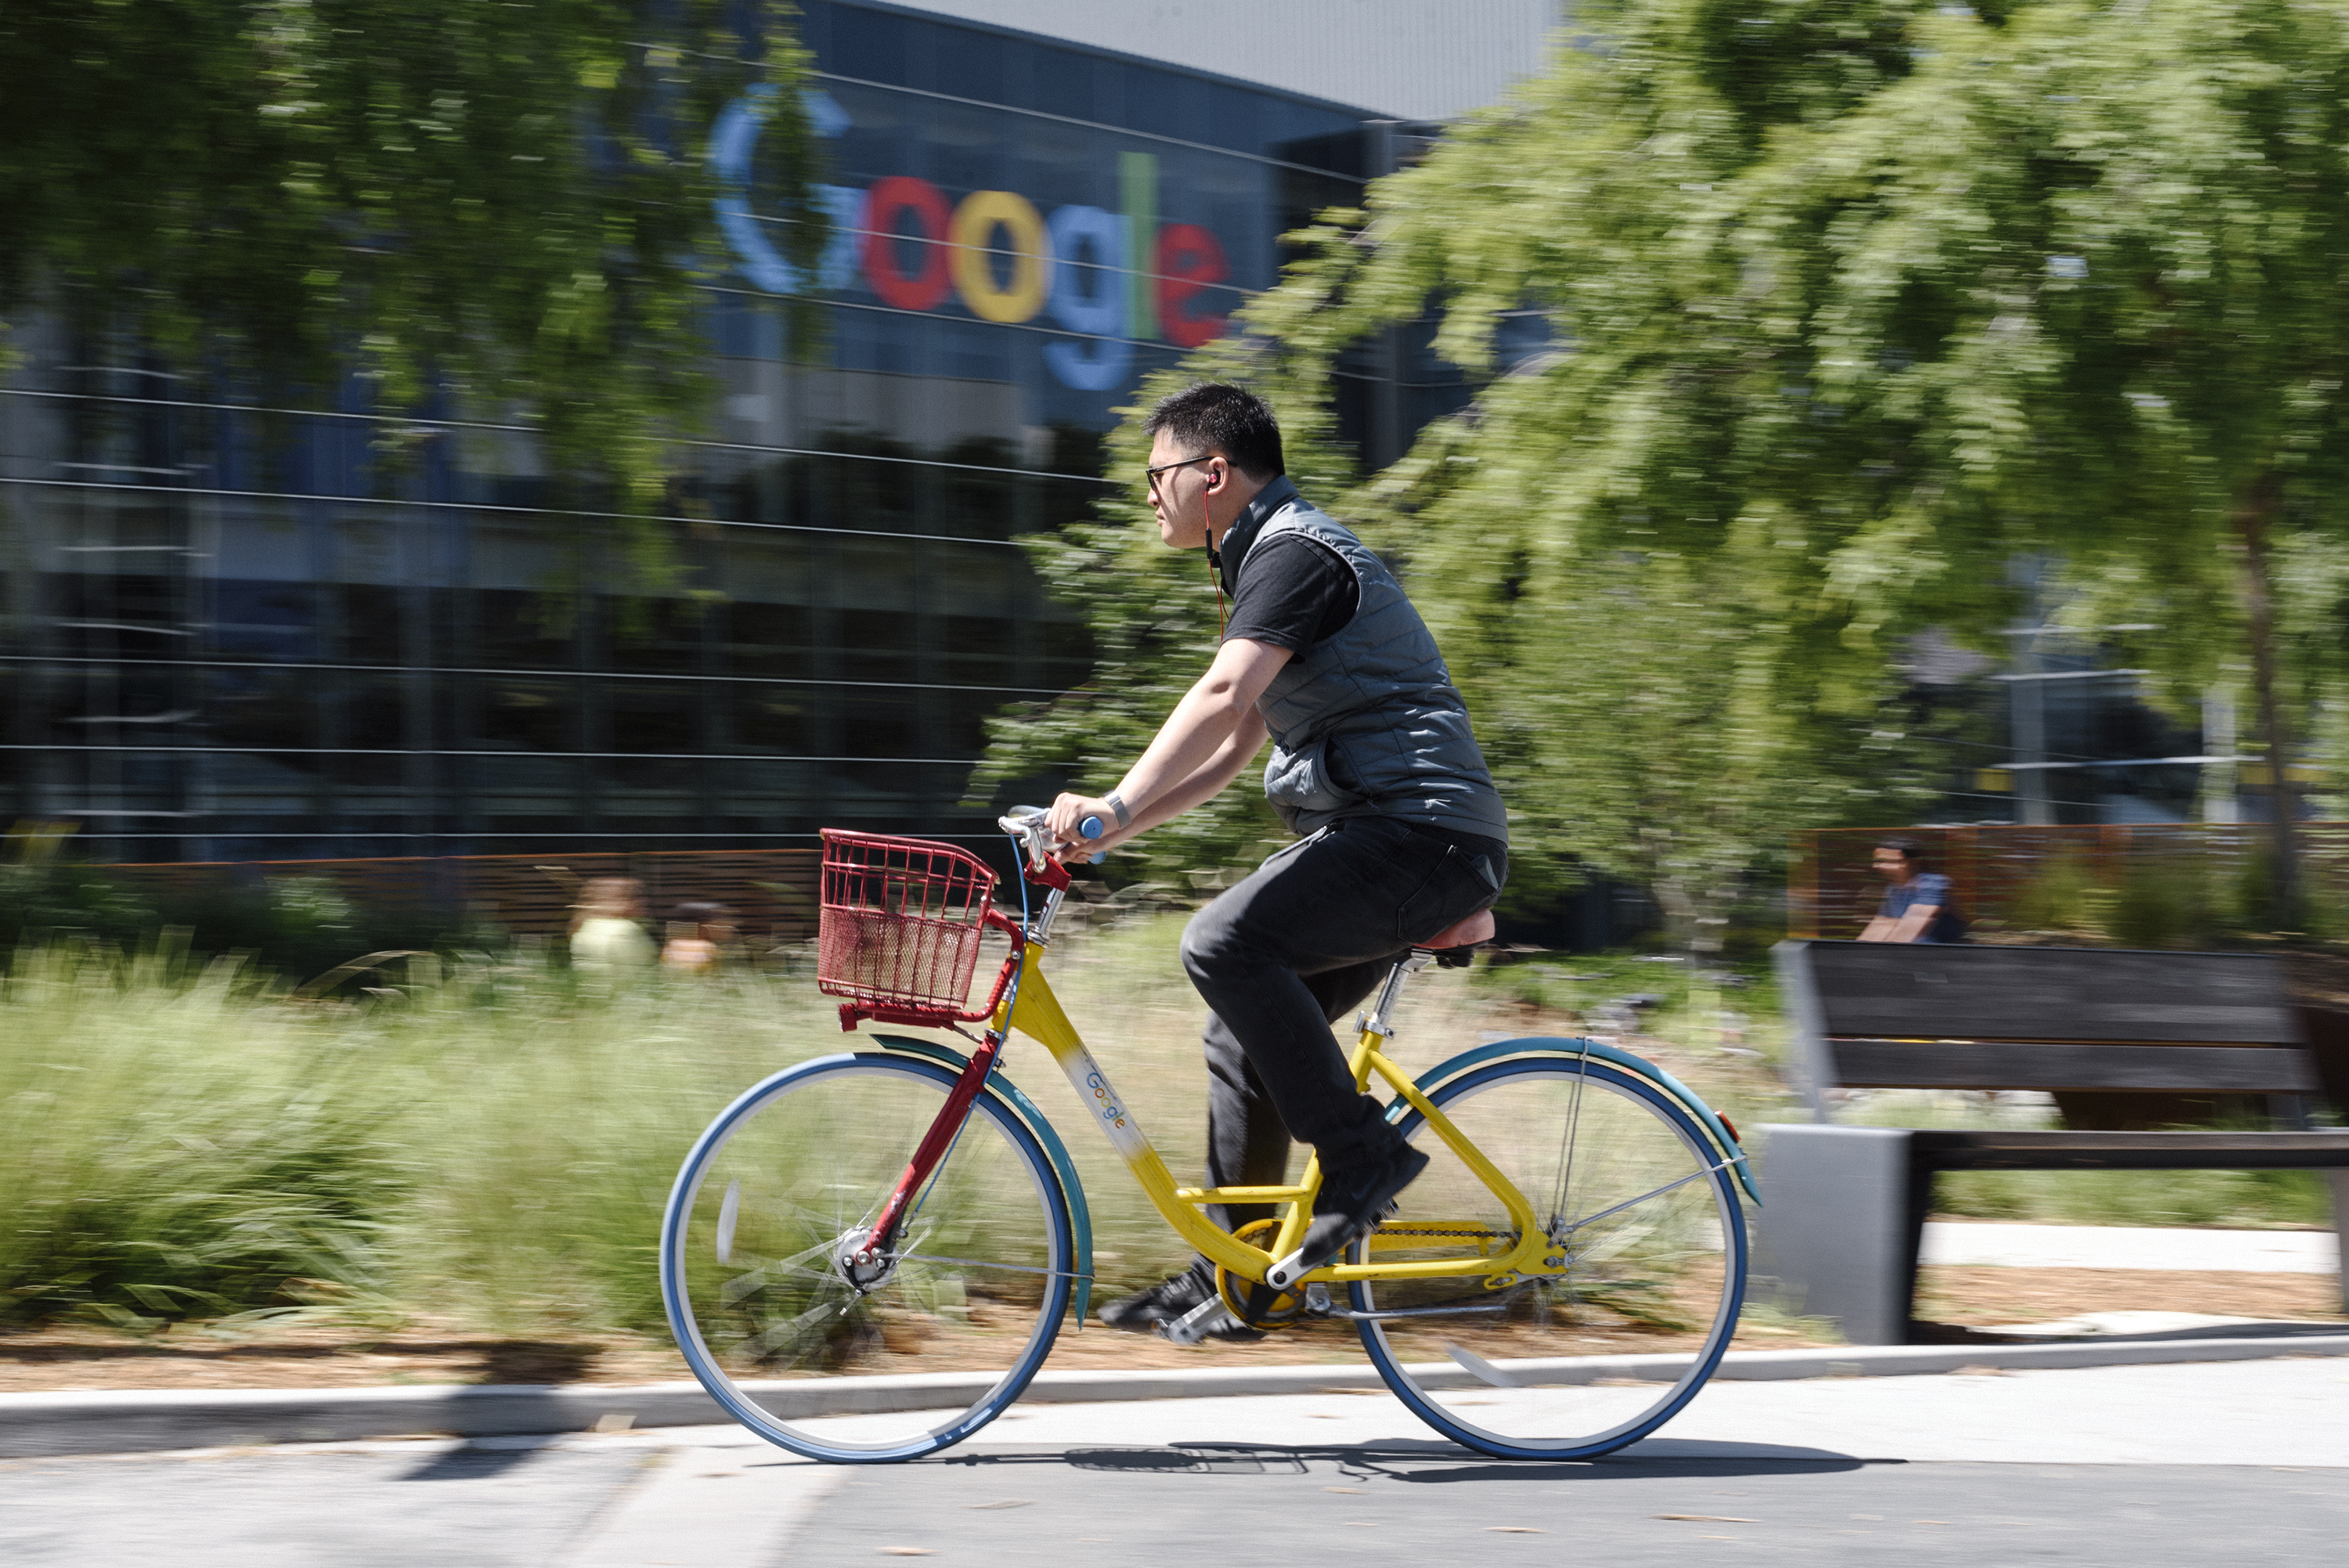 A person rides a bike past signage on the Google campus.